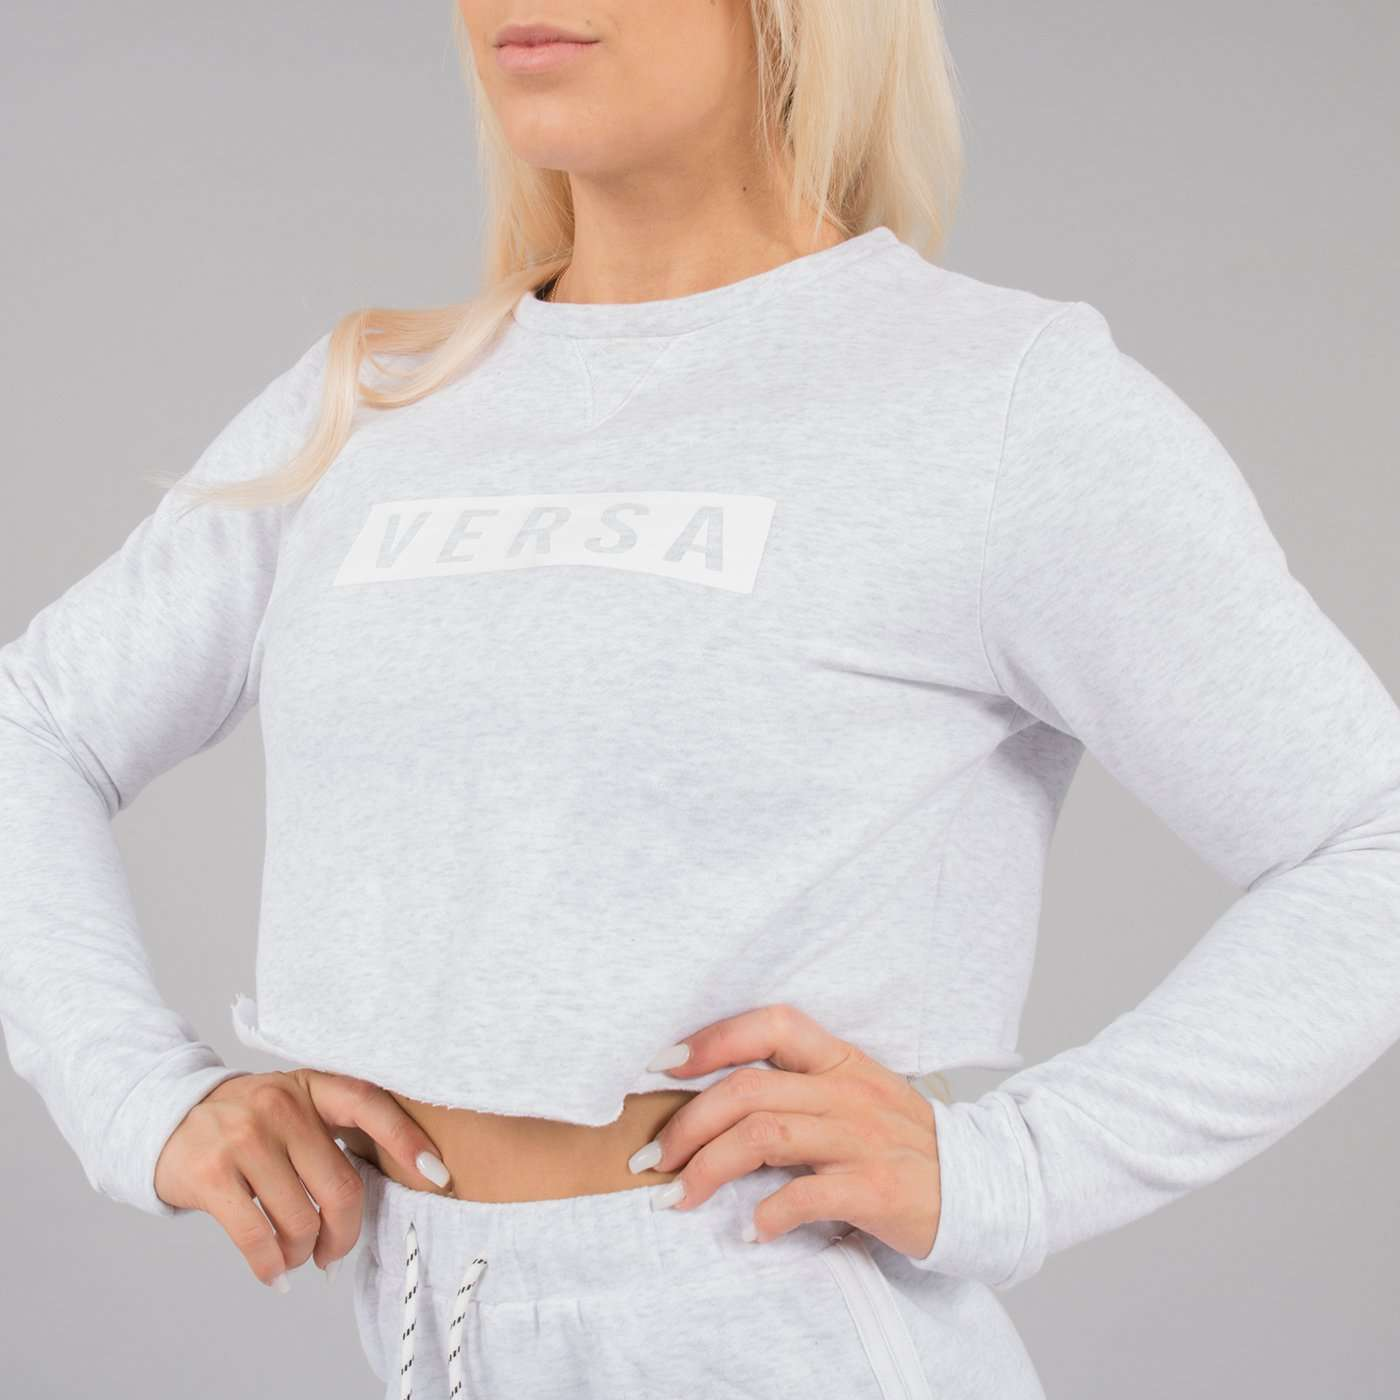 Versa Forma | Nao Crop Top - White Heather